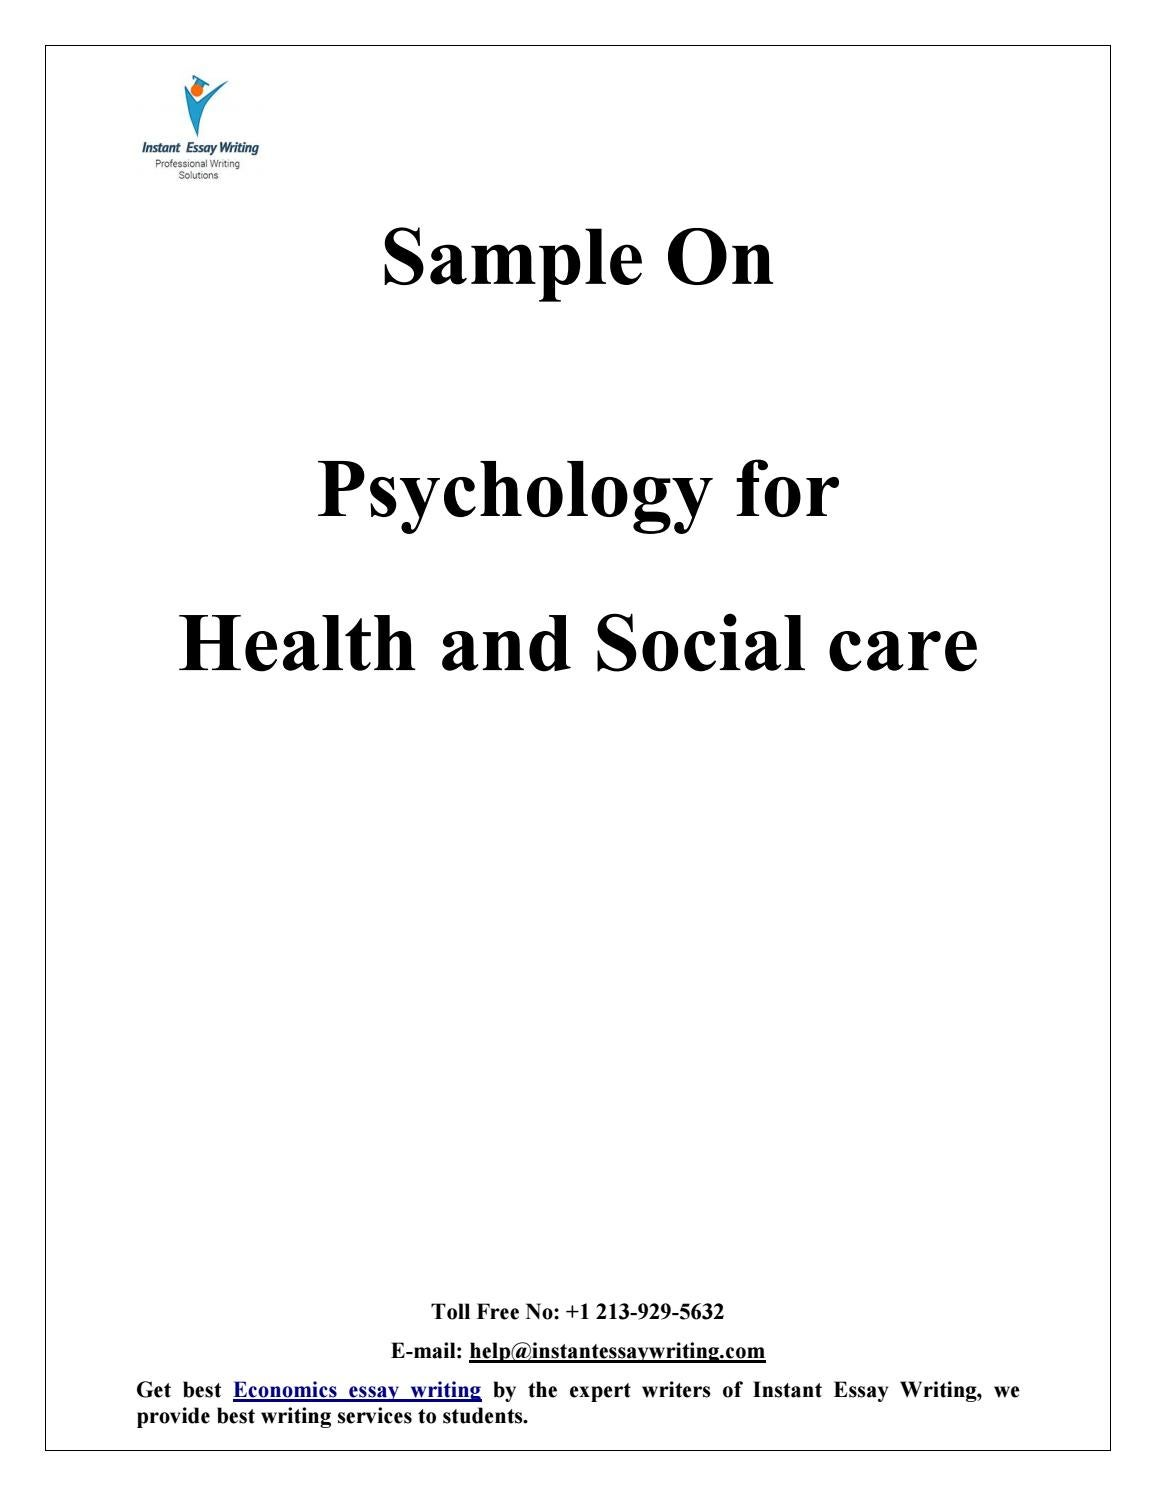 sample on psychology for health and social care by instant essay  sample on psychology for health and social care by instant essay writing by instant essay writing issuu